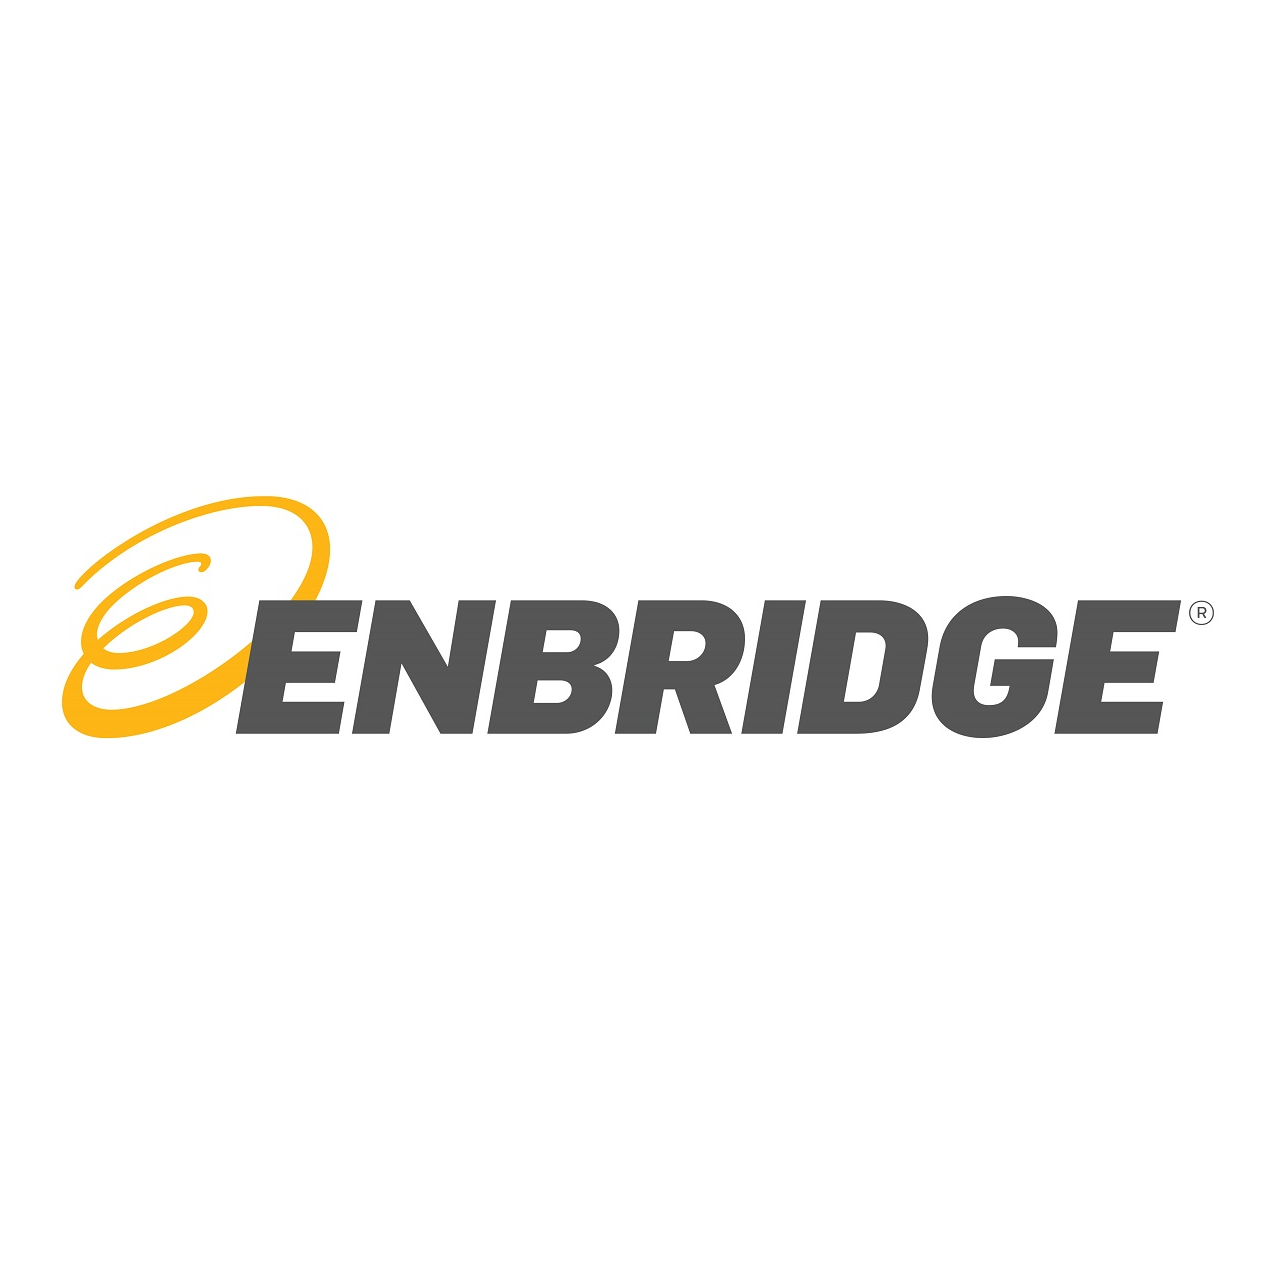 enbridge_logo_square